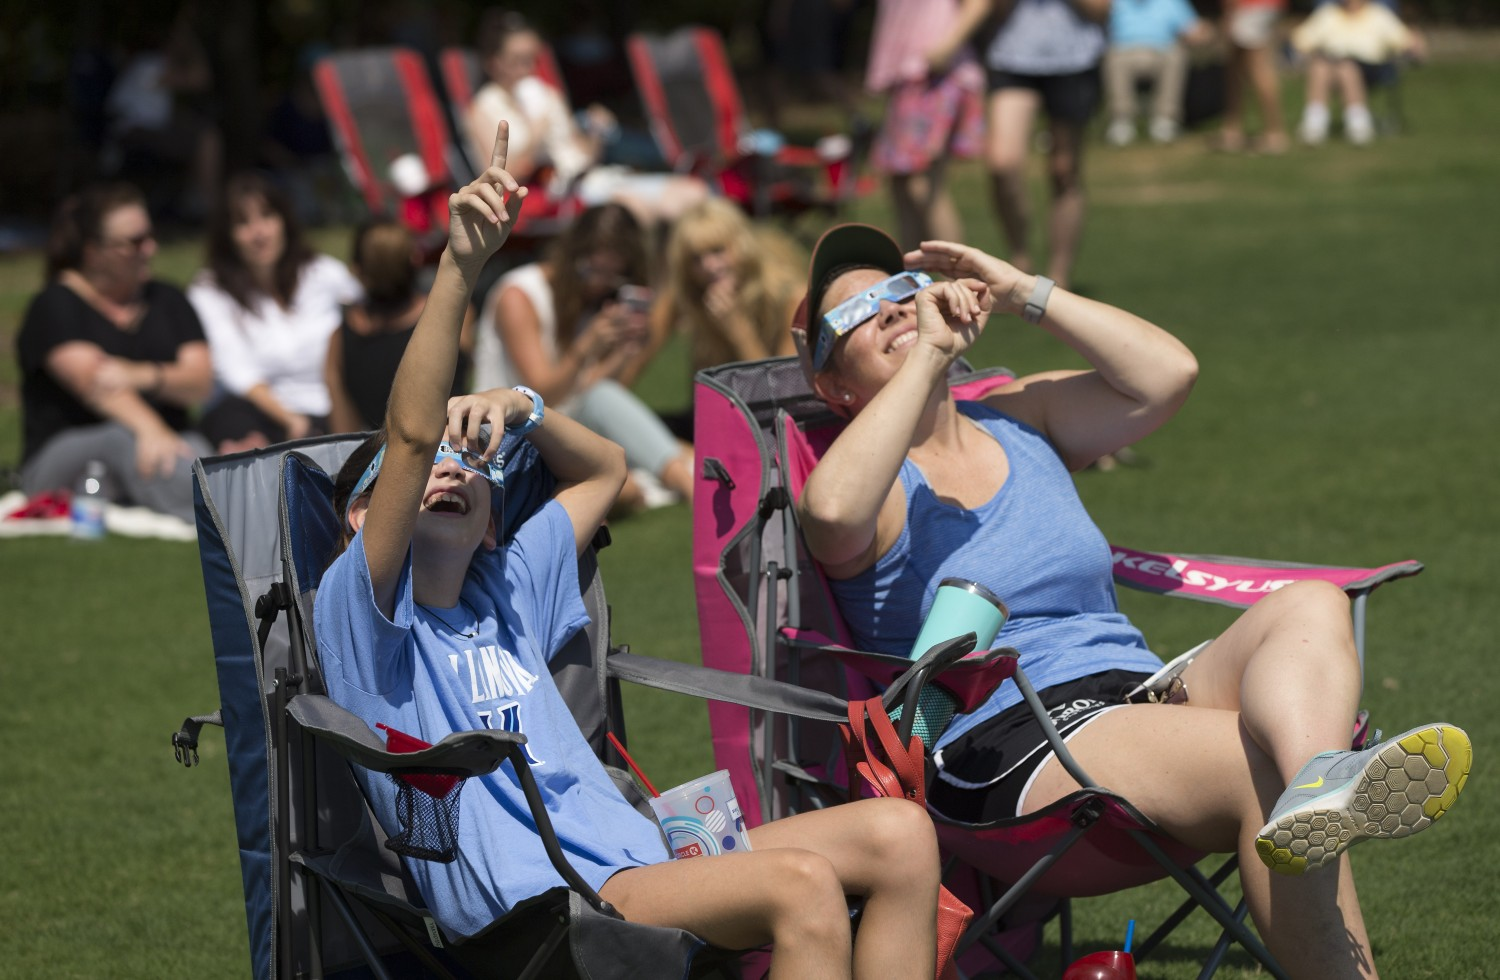 Erin and Kelly Curtis of Cary enjoy the eclipse at North Cary Park.